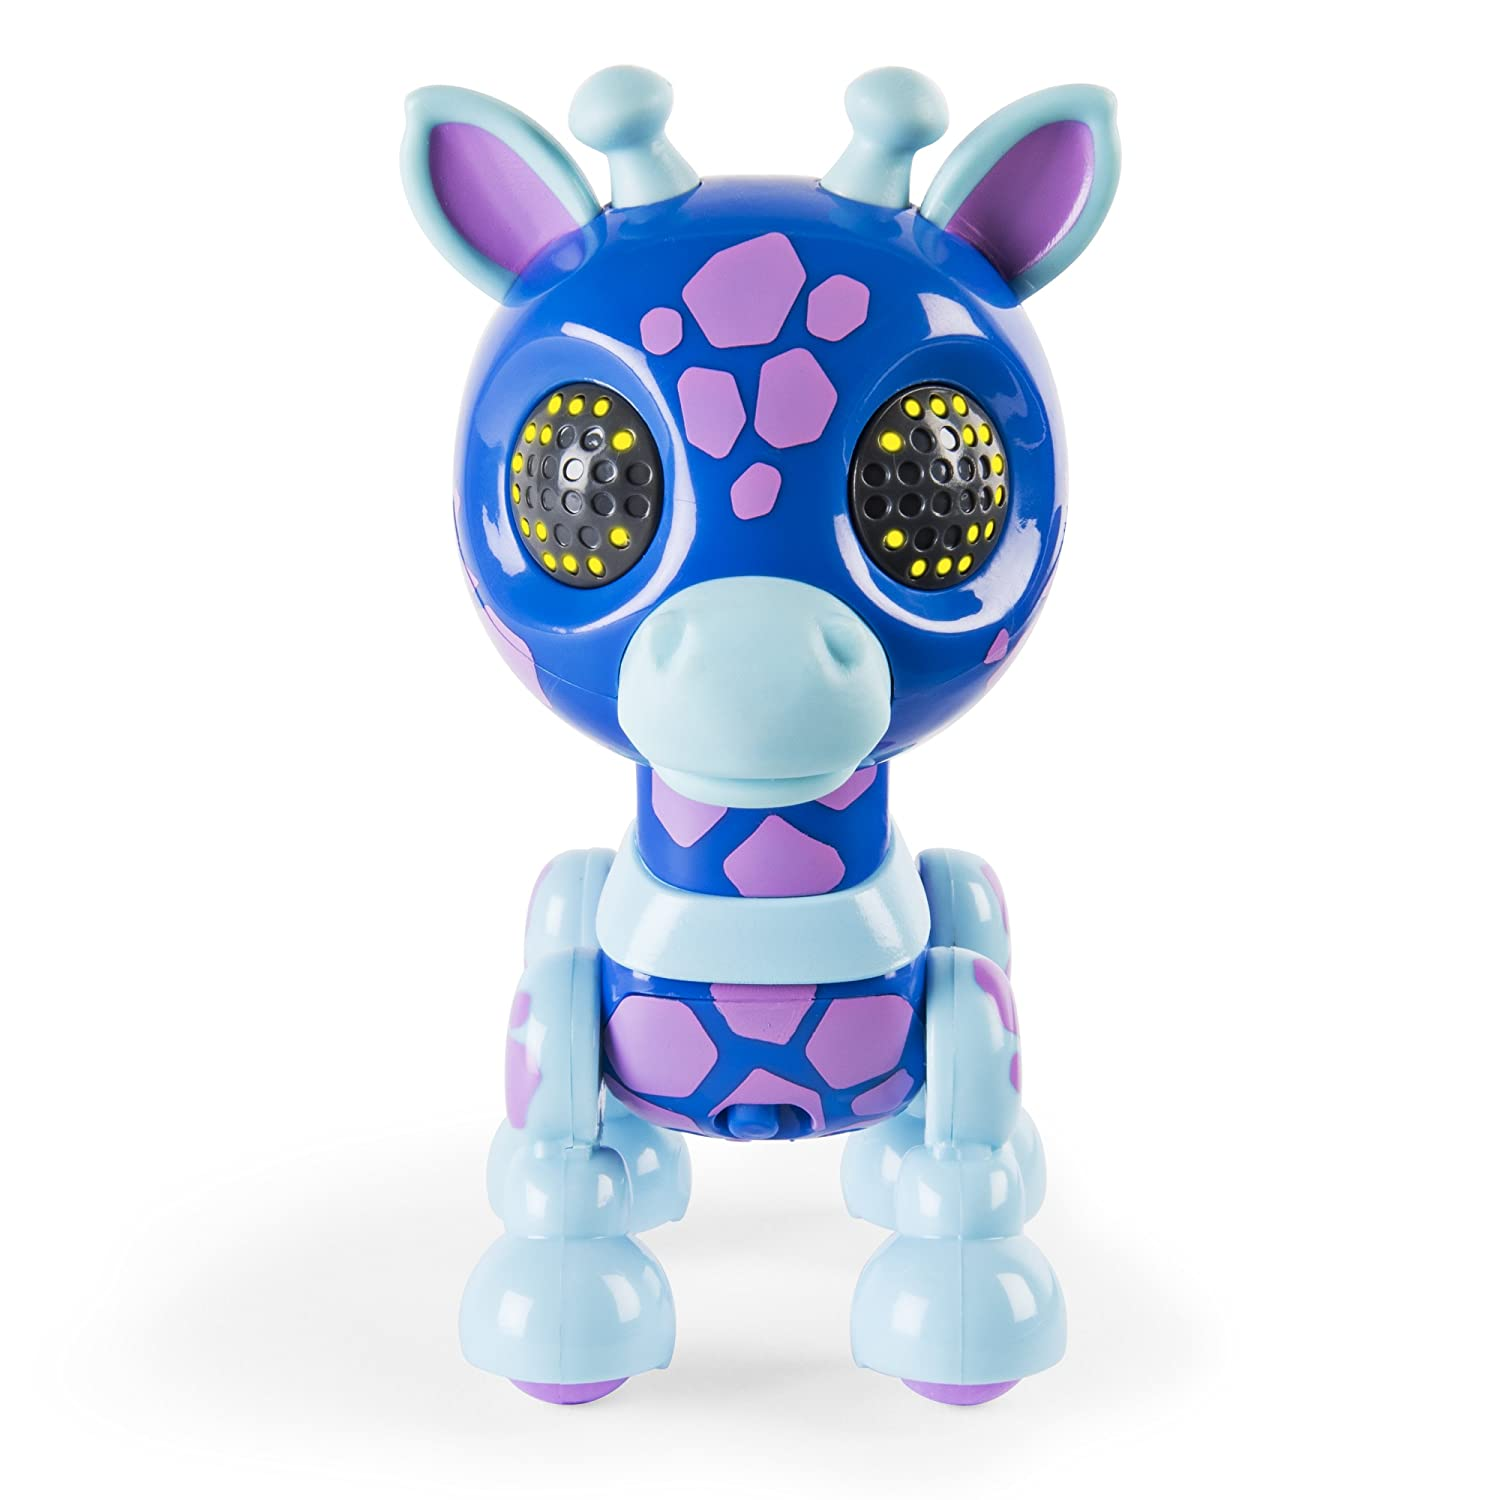 Zoomer Zupps Interactive Giraffe with Lights Sounds and Sensors ~ Rafa